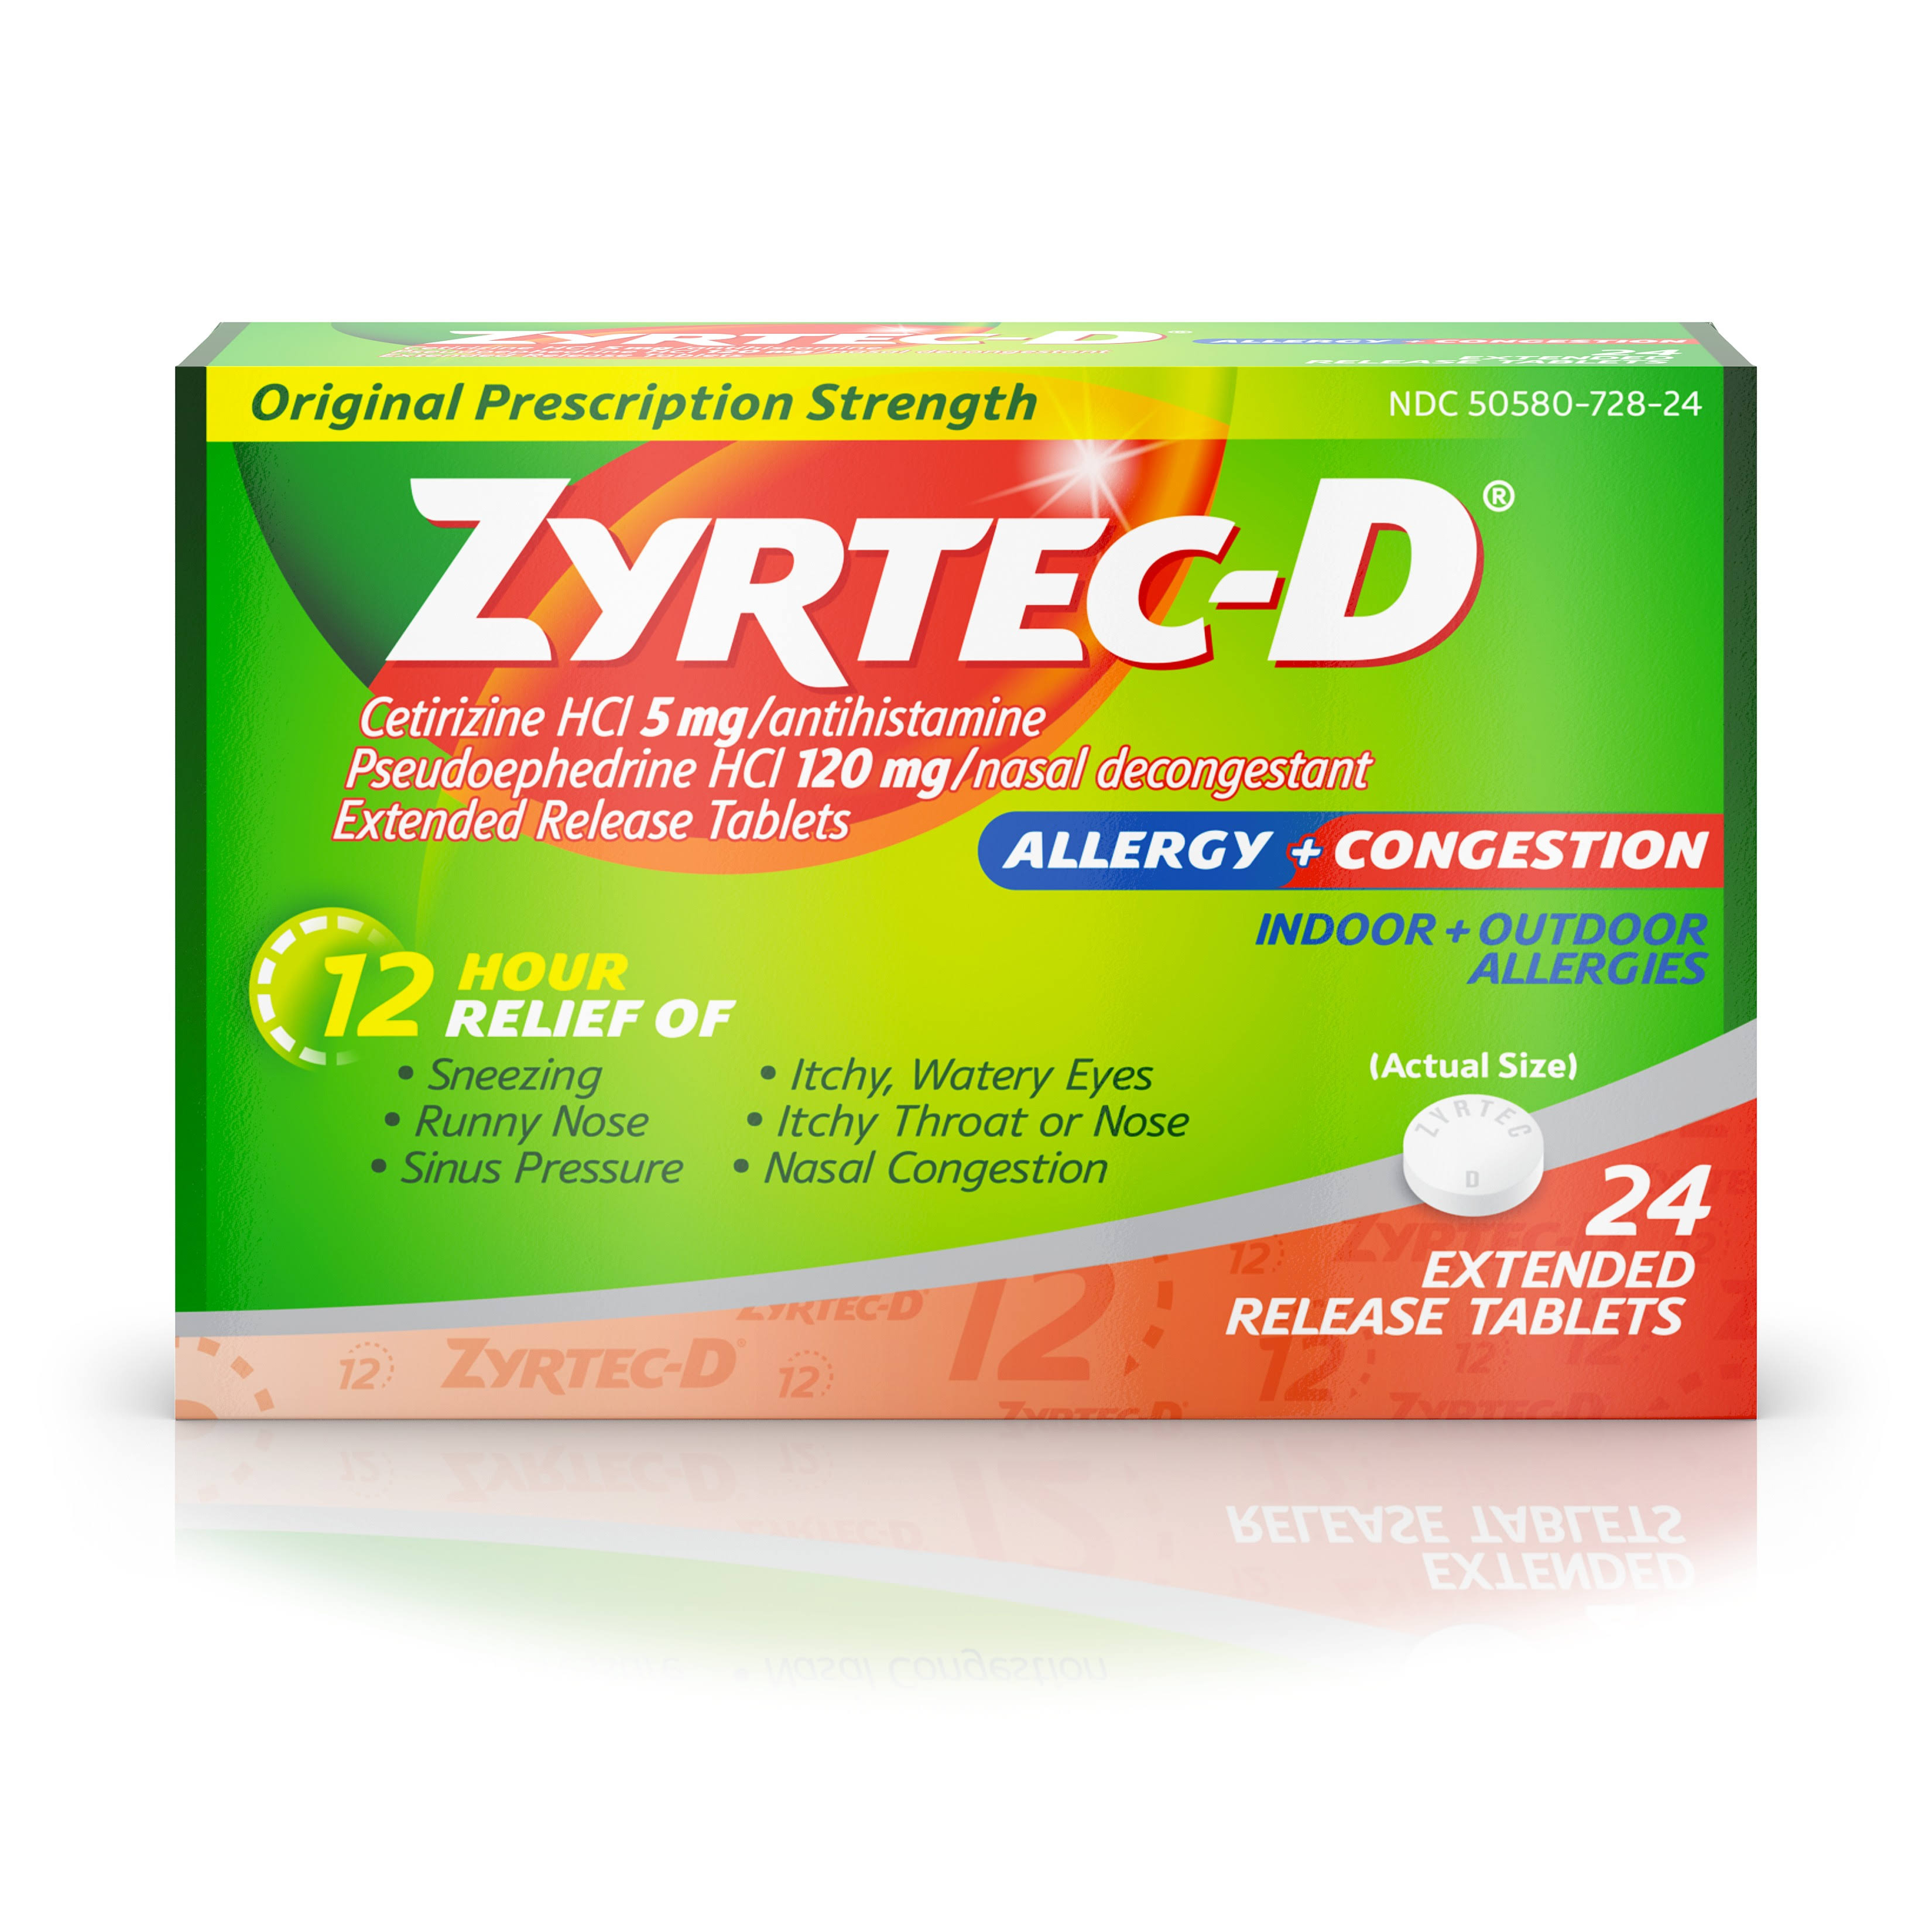 Zyrtec-D Extended Release Tablets